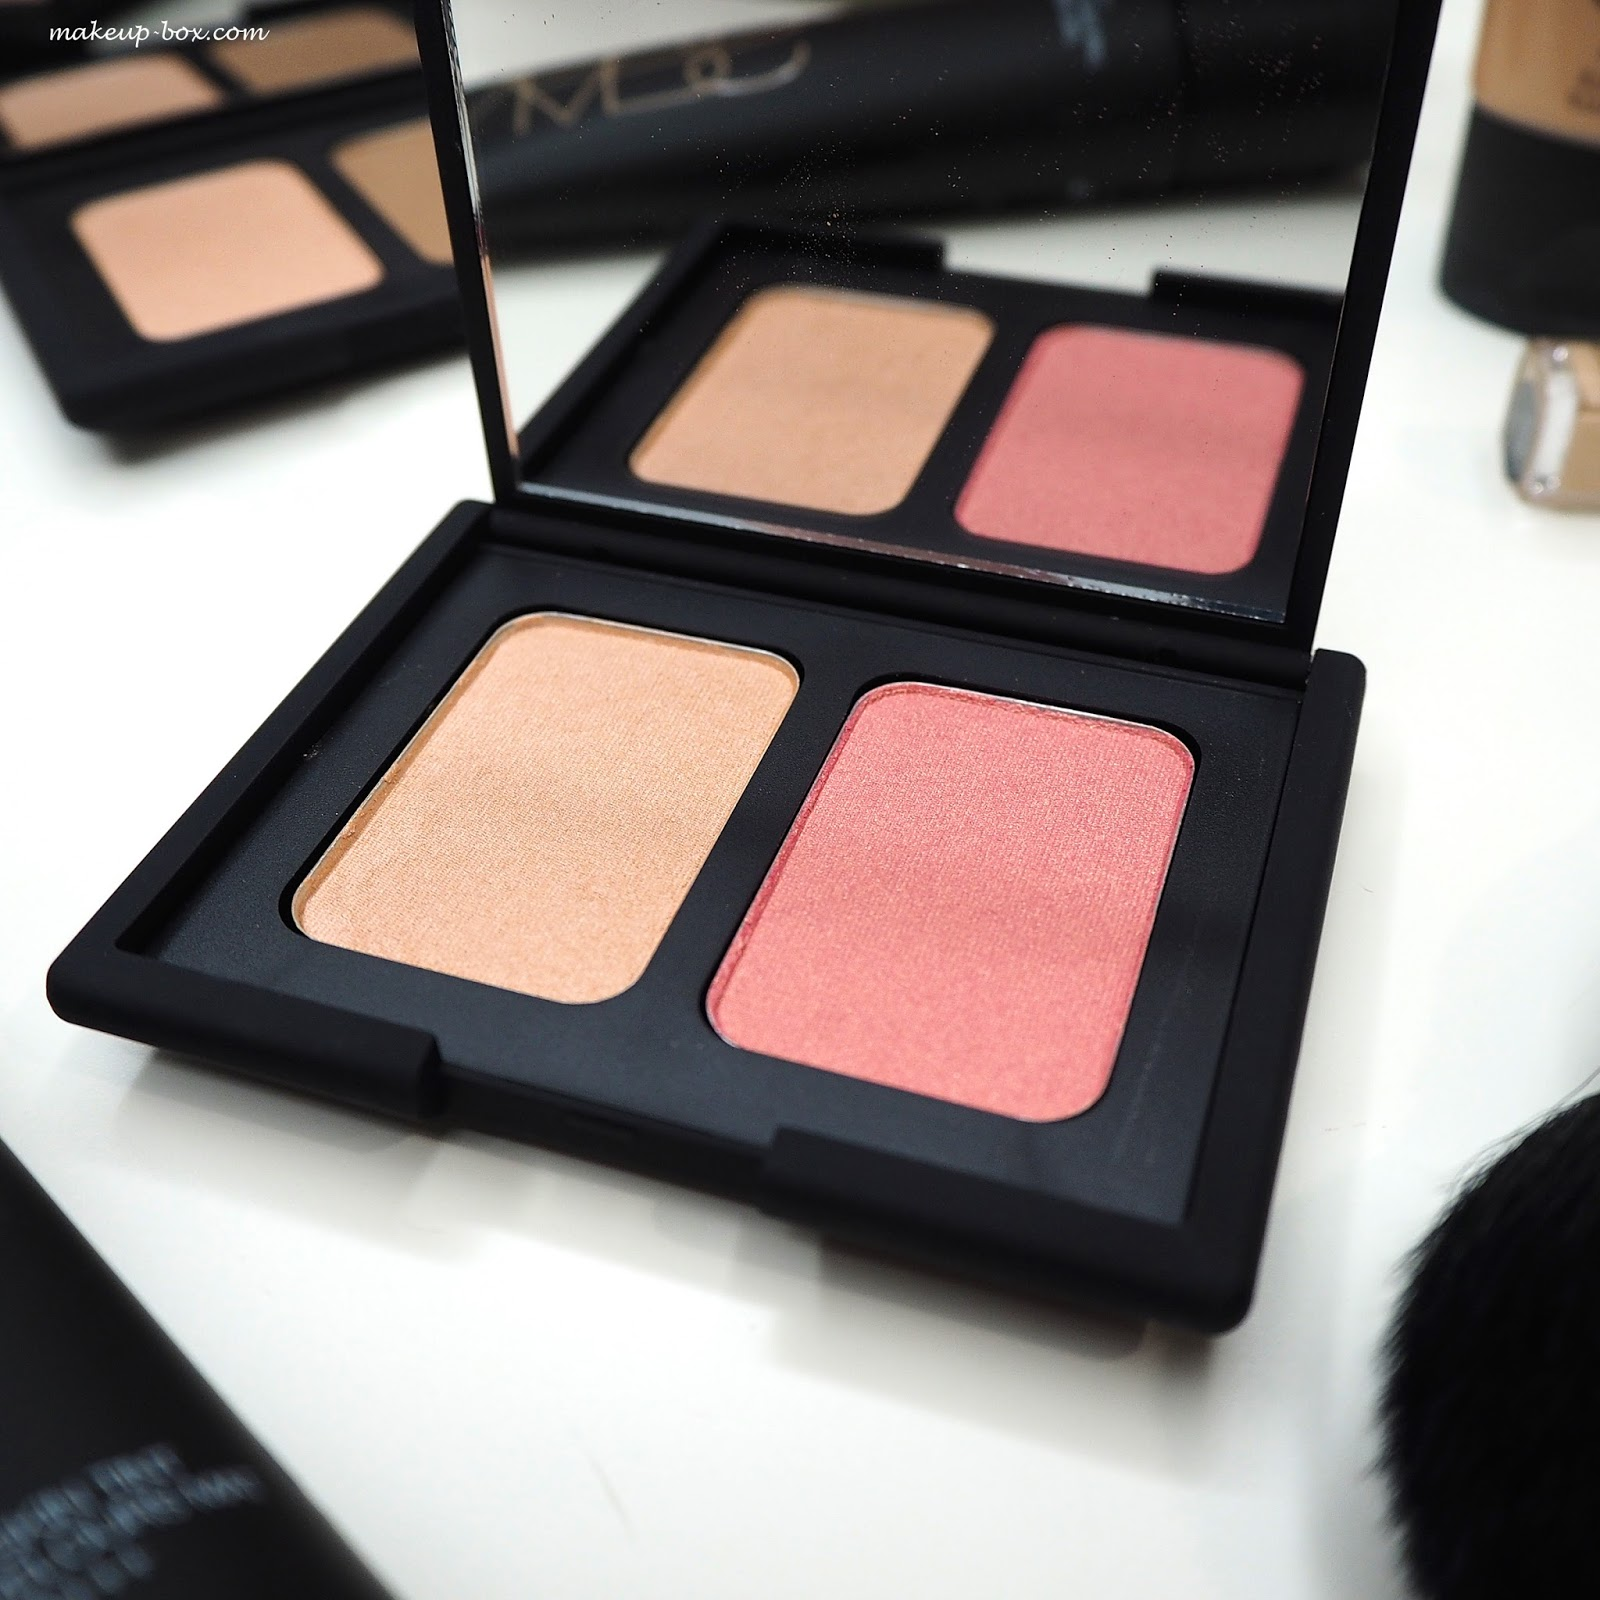 the makeup box a quick look nars spring 2016 hot sand collection. Black Bedroom Furniture Sets. Home Design Ideas